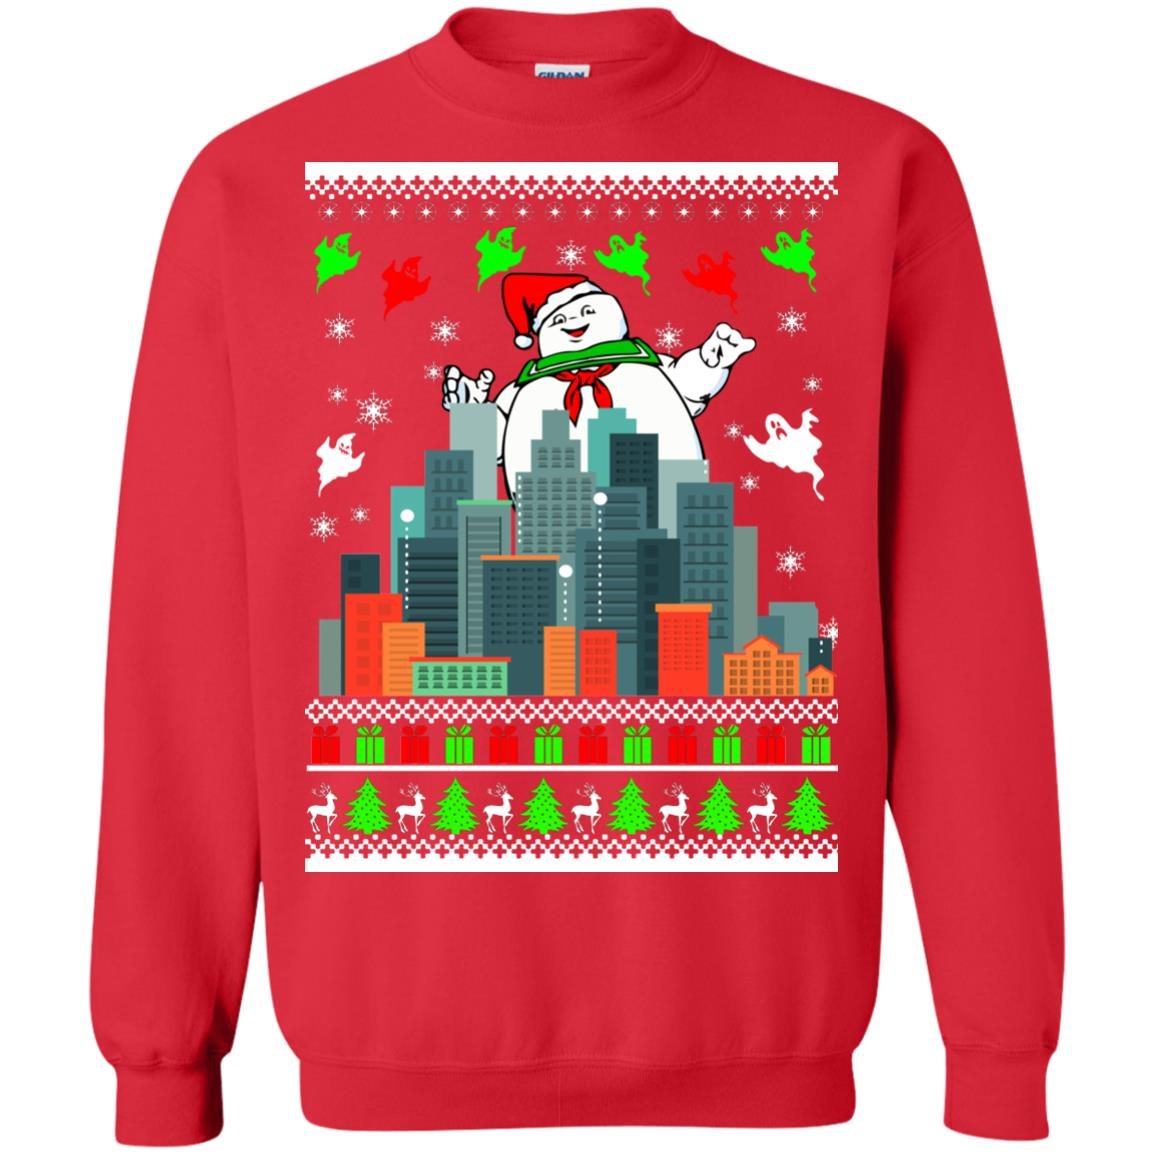 image 4474 - There is no Santa only Zuul Christmas Sweater, Shirt